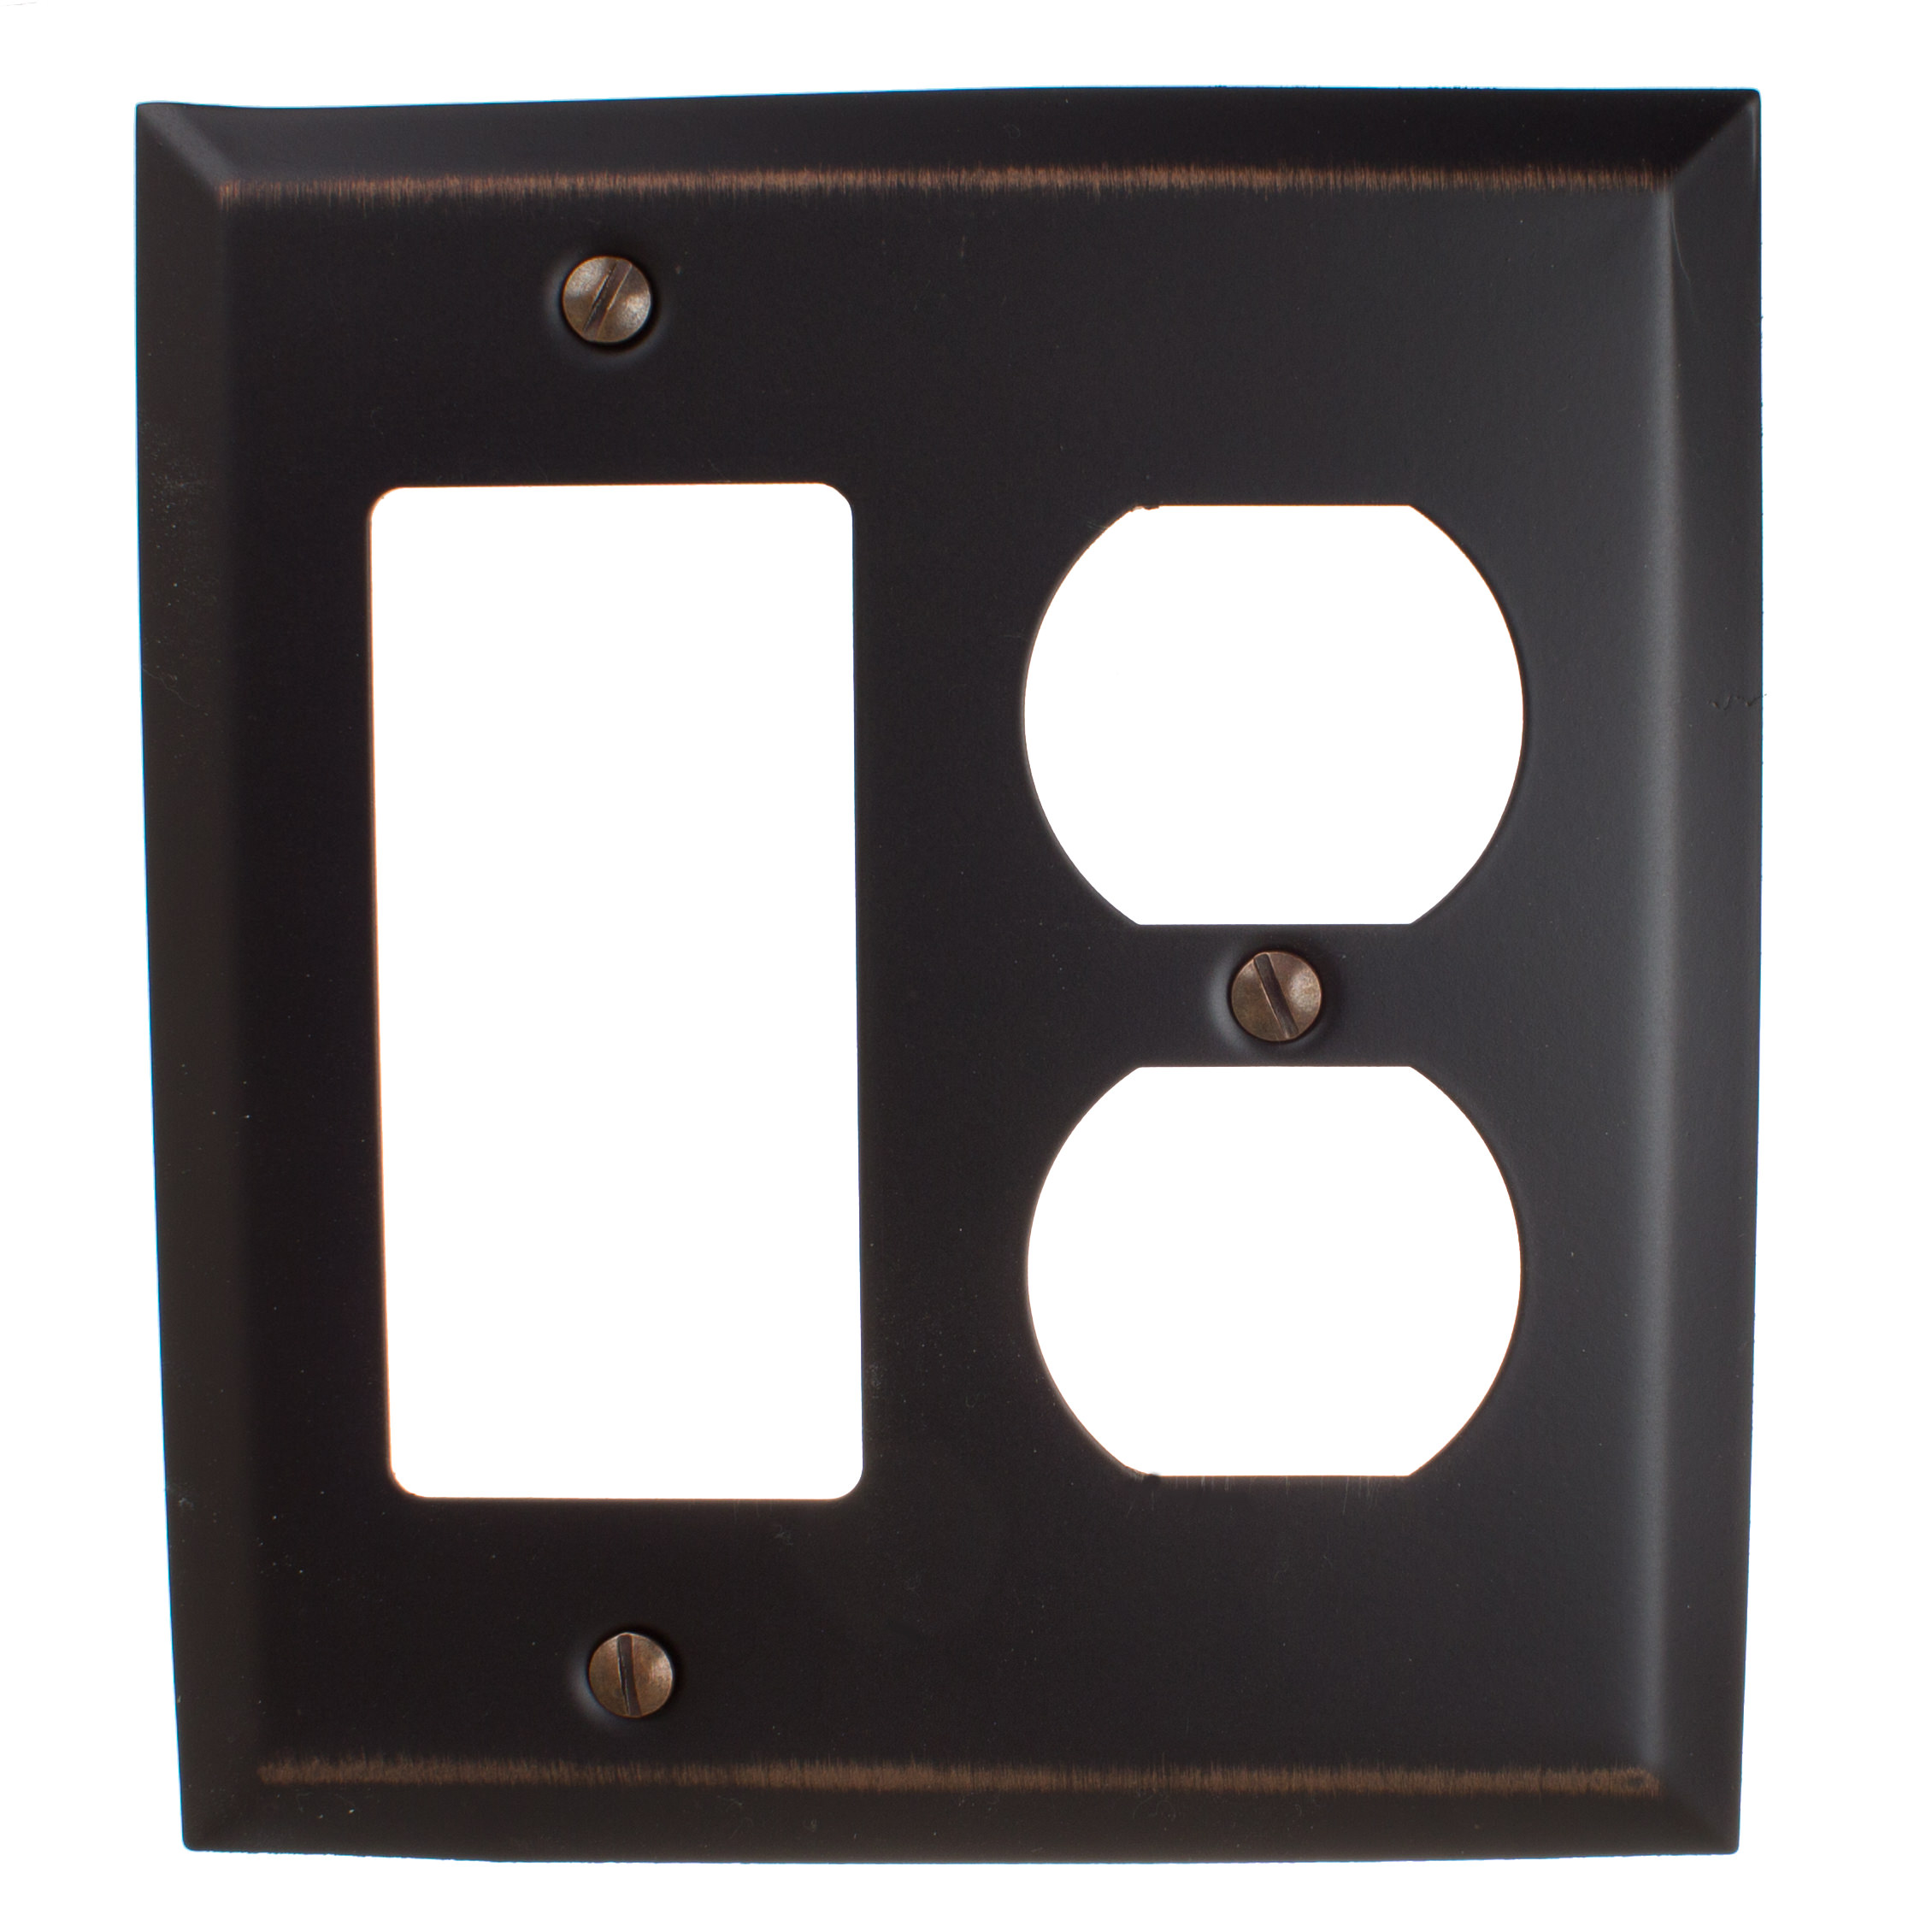 GlideRite Hardware Rocker and Duplex Outlet 2-Gang Beveled Edge Combination Wall Plate Cover, Brushed Nickel